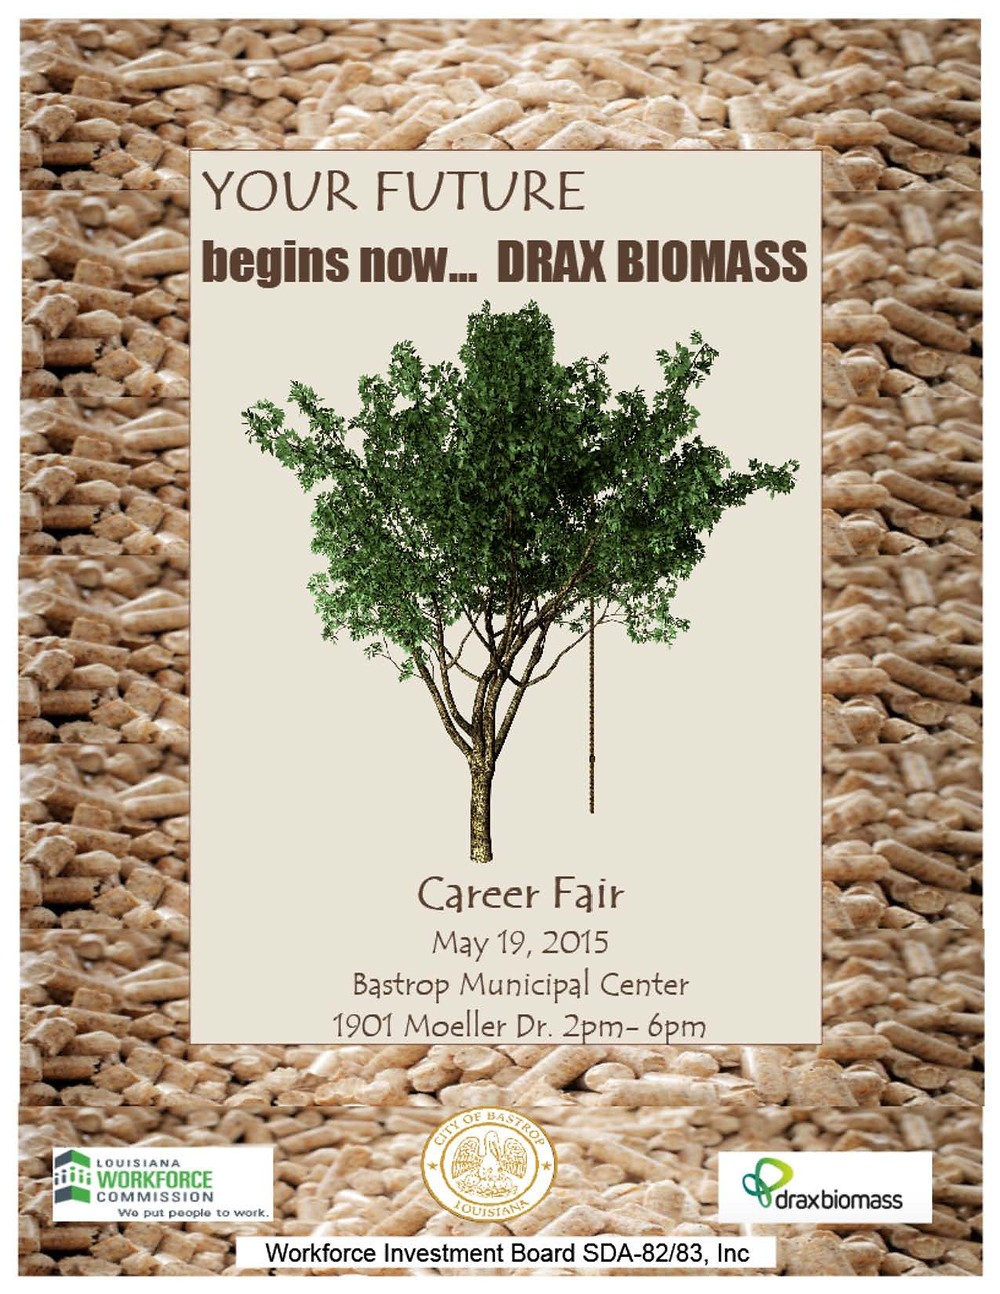 Drax Biomass Career Fair 2015 (2).jpg